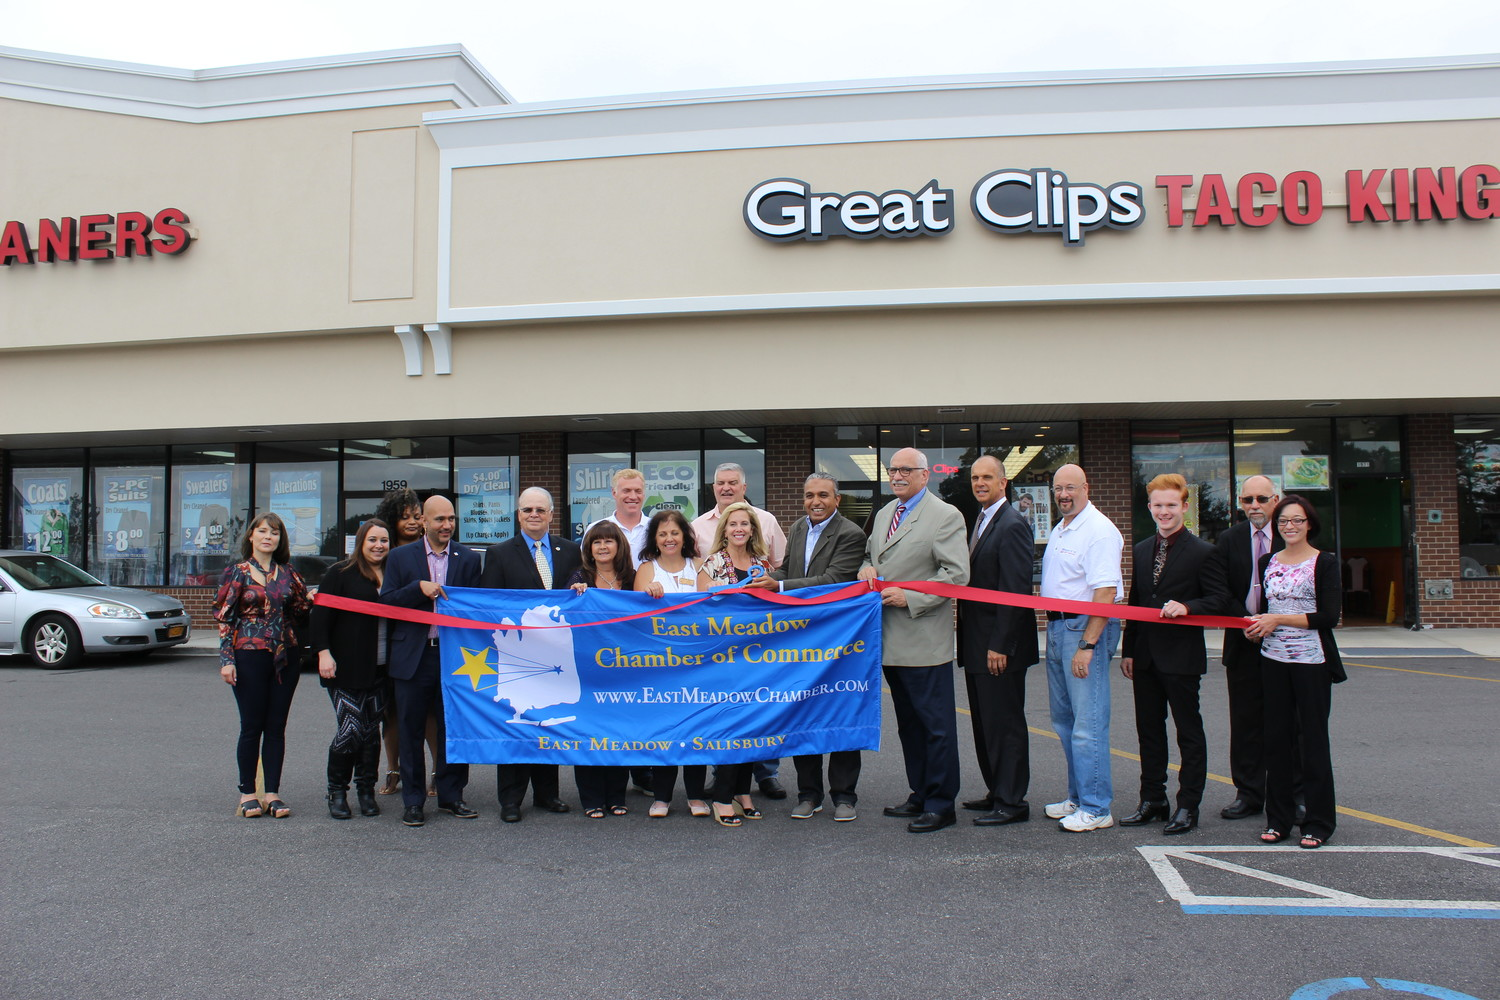 Business leaders and elected officials welcomed Great Clips to the community with a ribbon cutting on Sept. 7, presented by the East Meadow Chamber of Commerce.